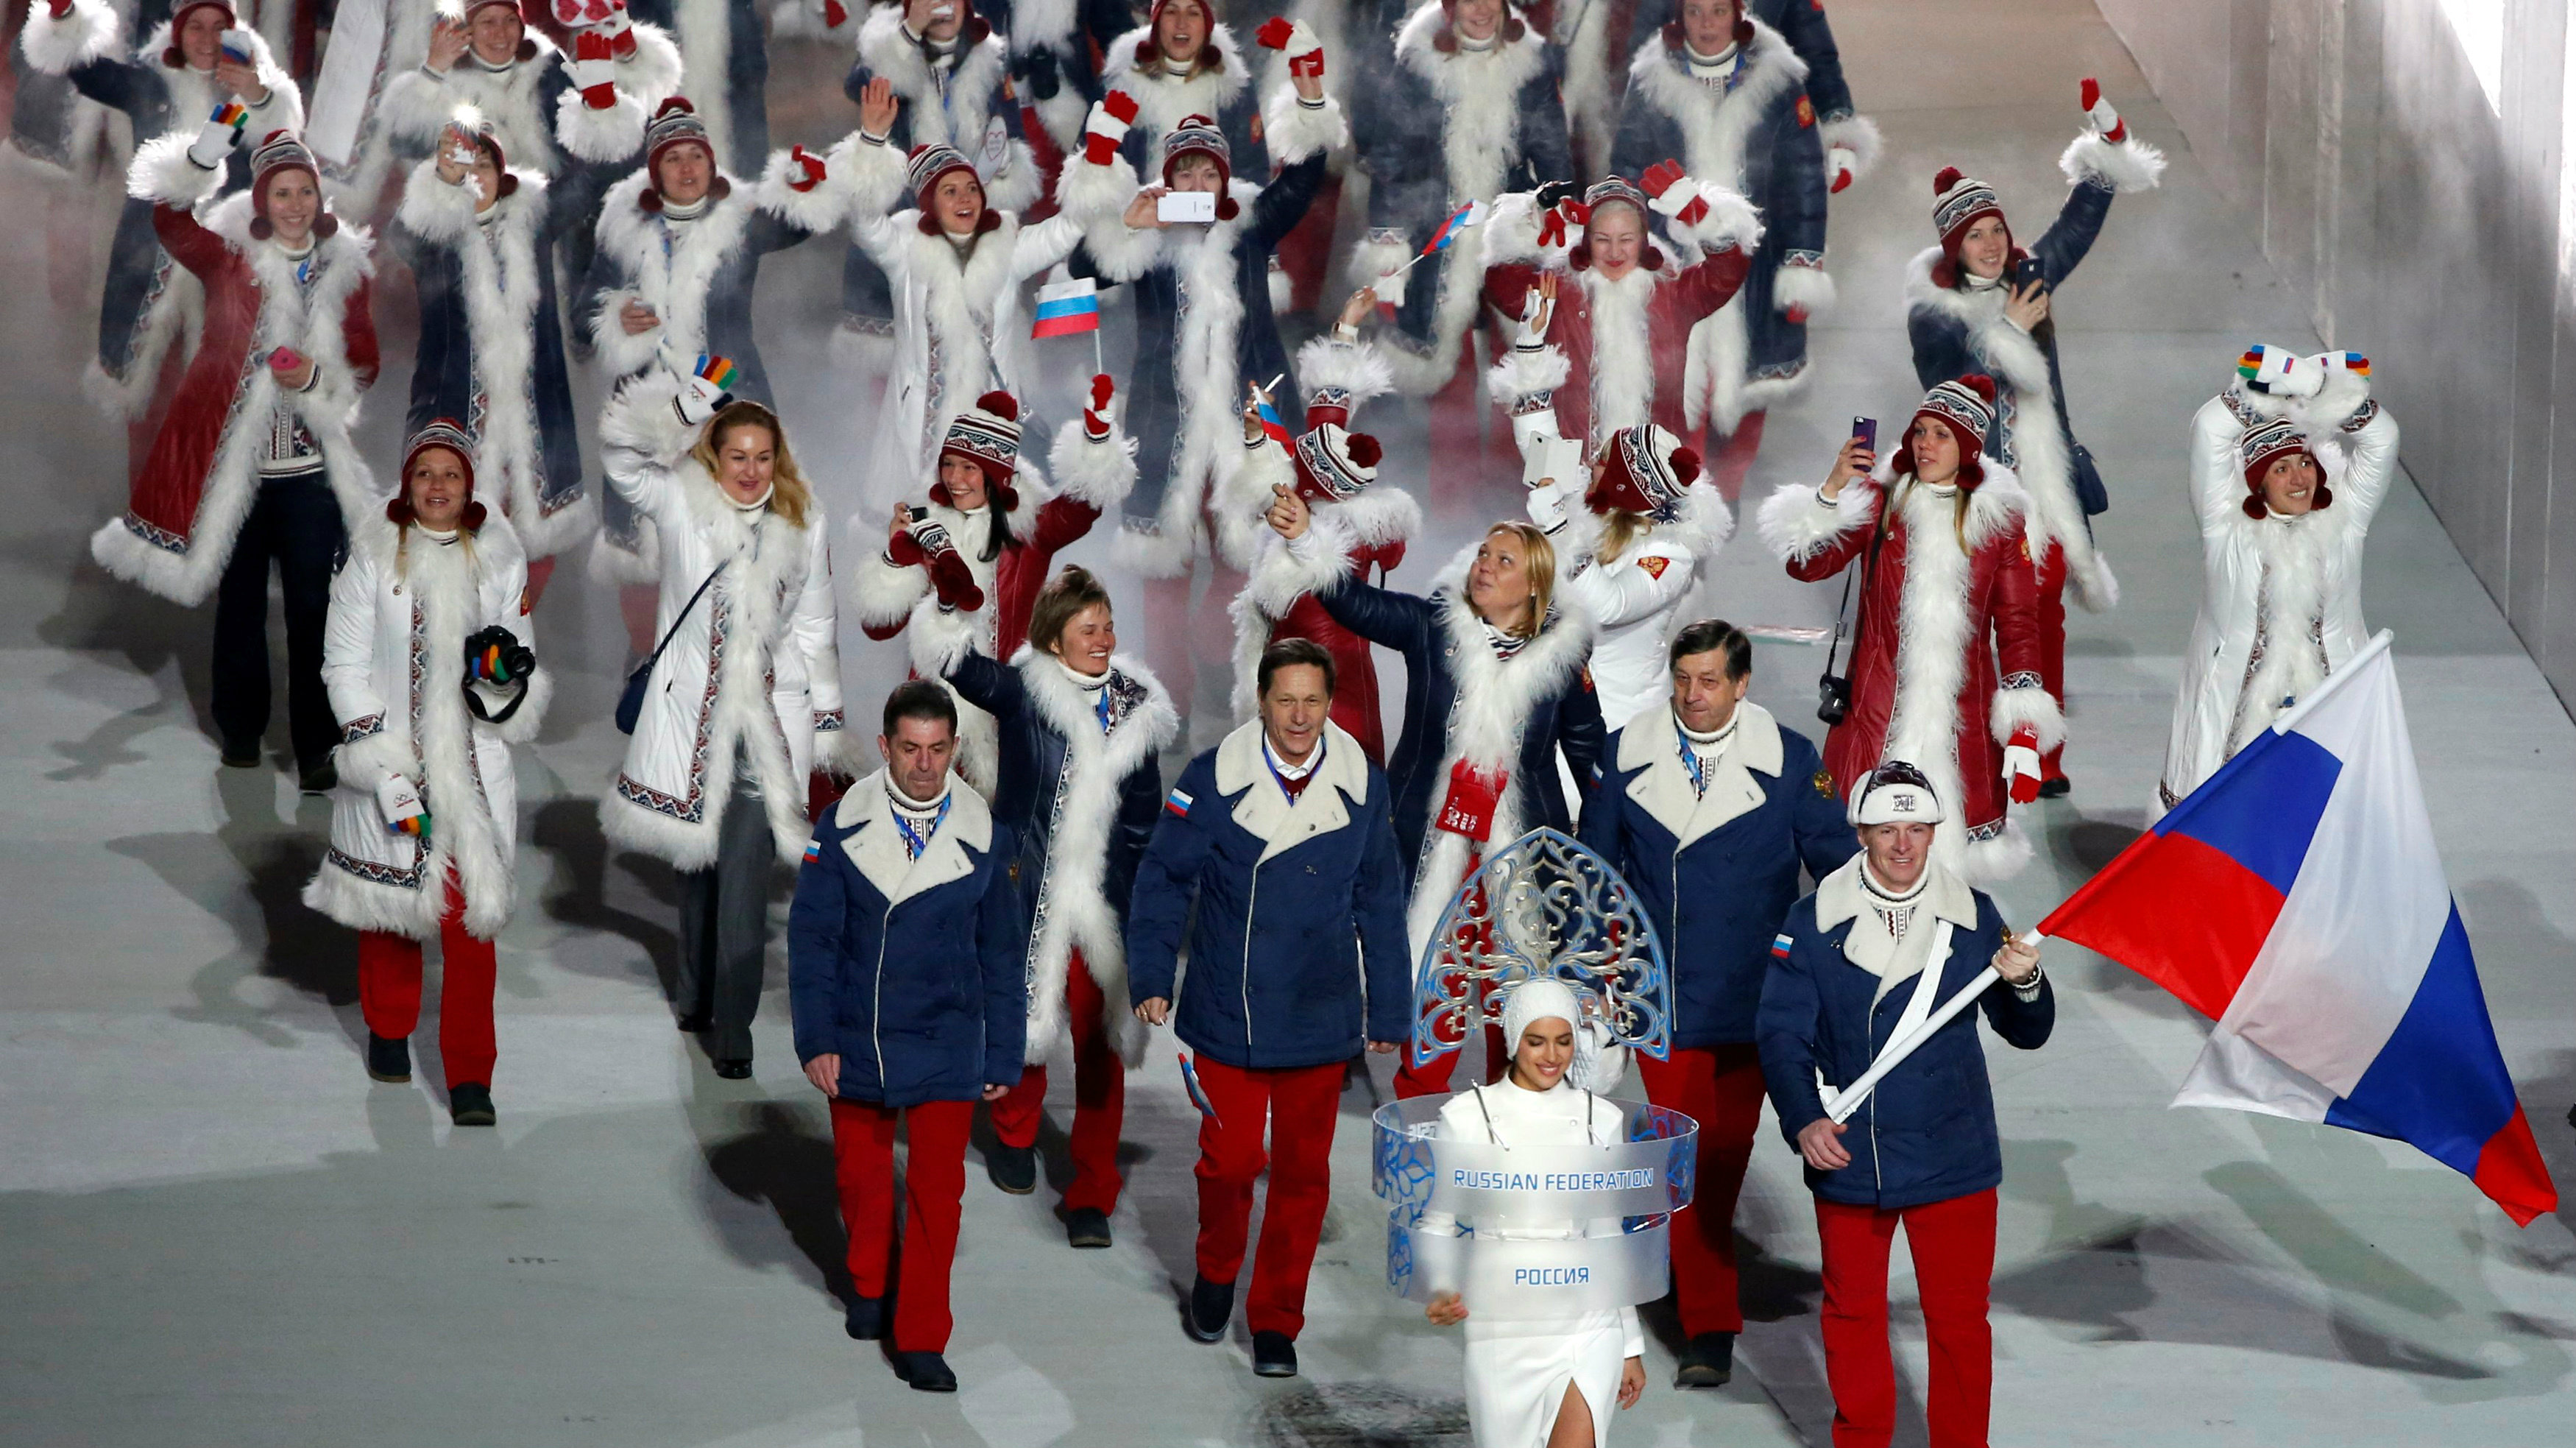 Only one Russian athlete is allowed to participate in the Olympics